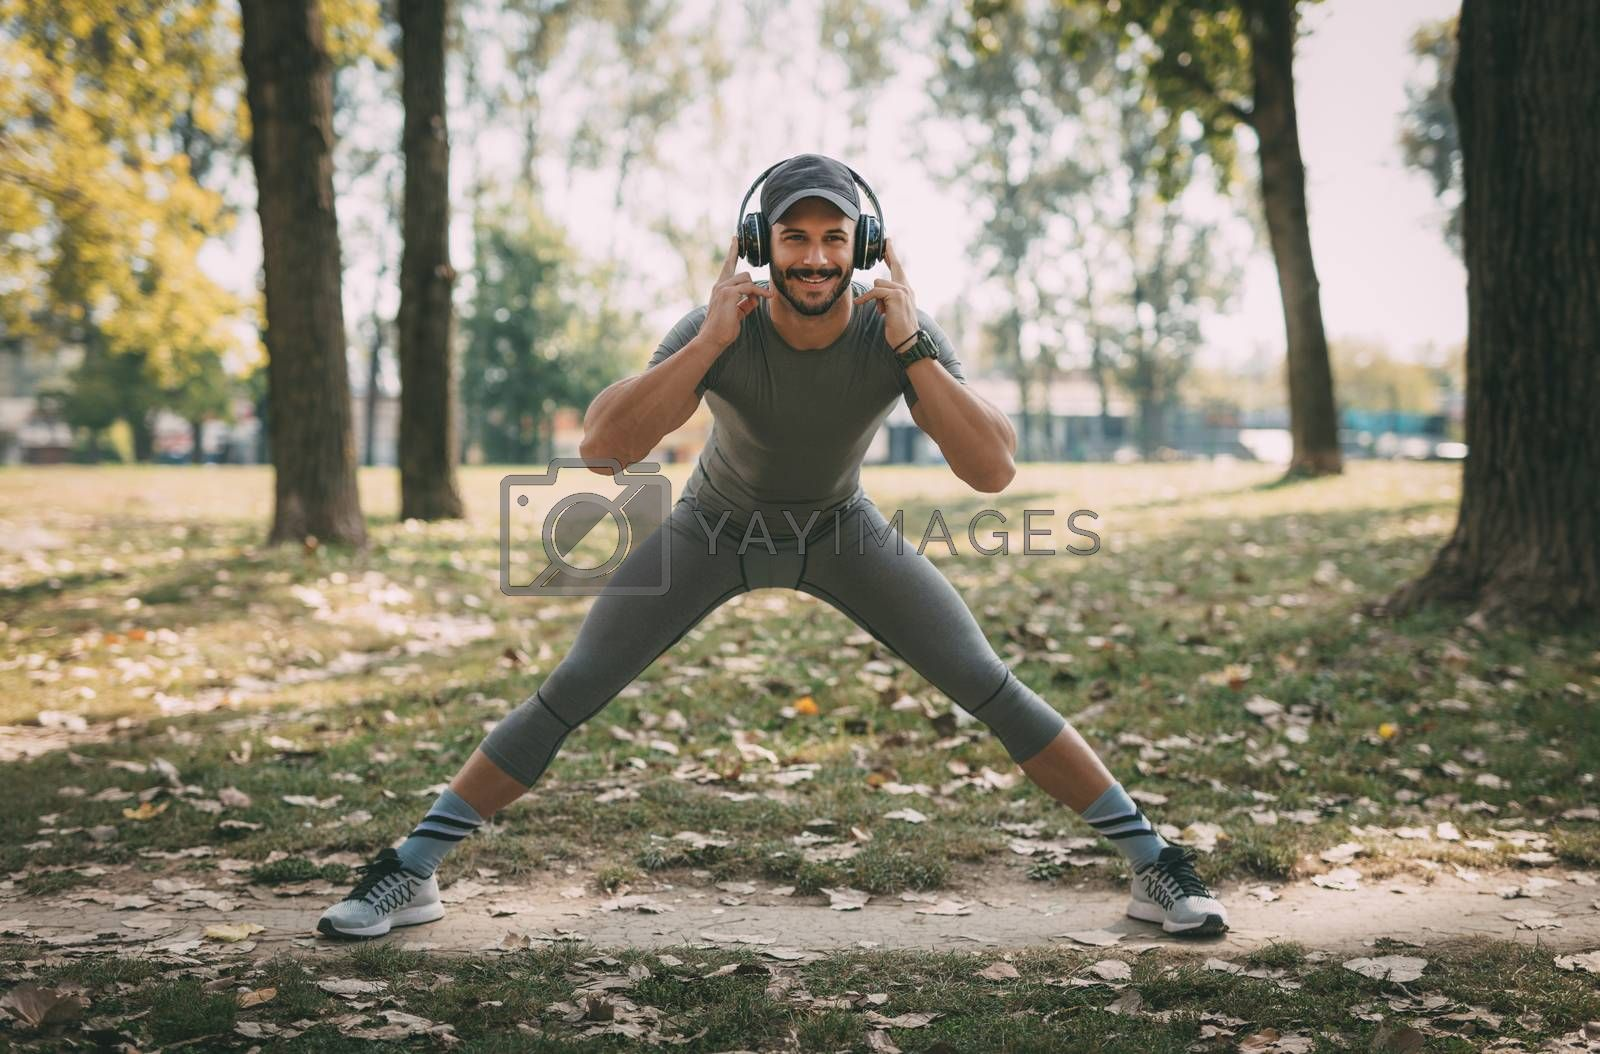 Young smiling sportsman with headphones doing stretching exercise in nature. Looking at camera.